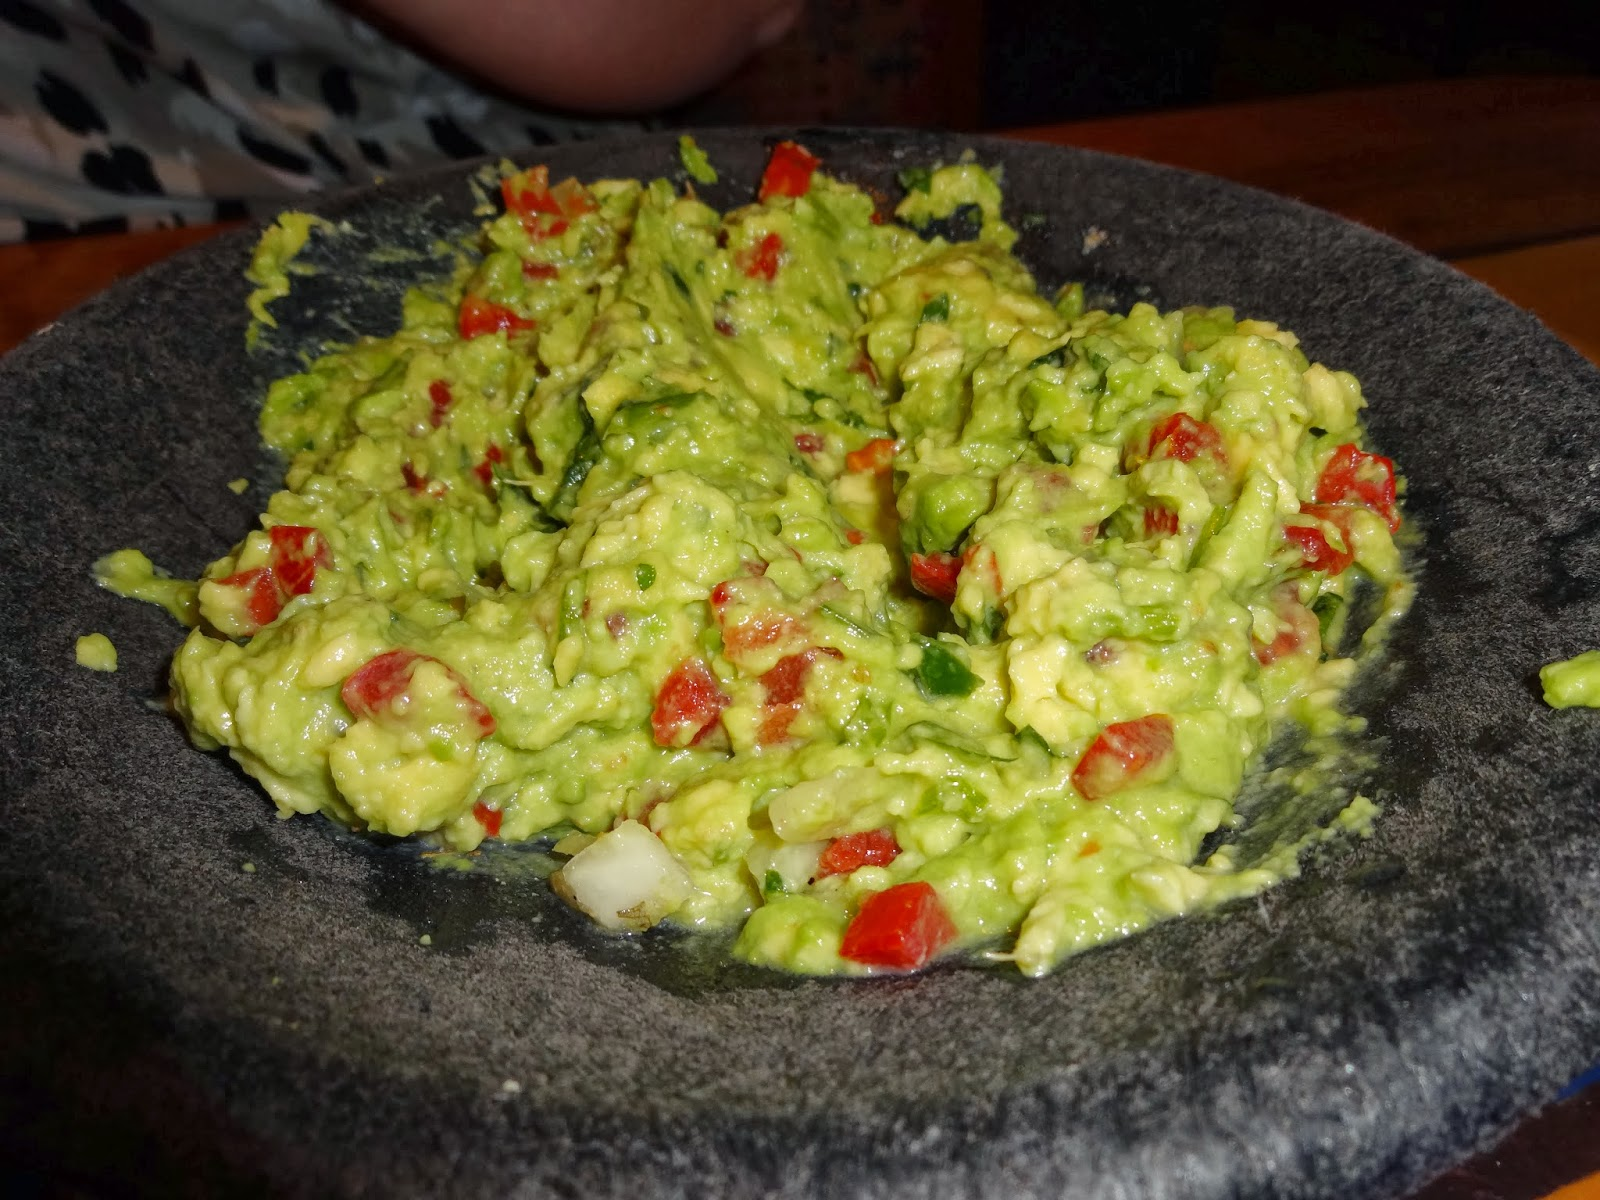 Eating My Way Through OC: Experiencing the Flavors of Baja at El Torito